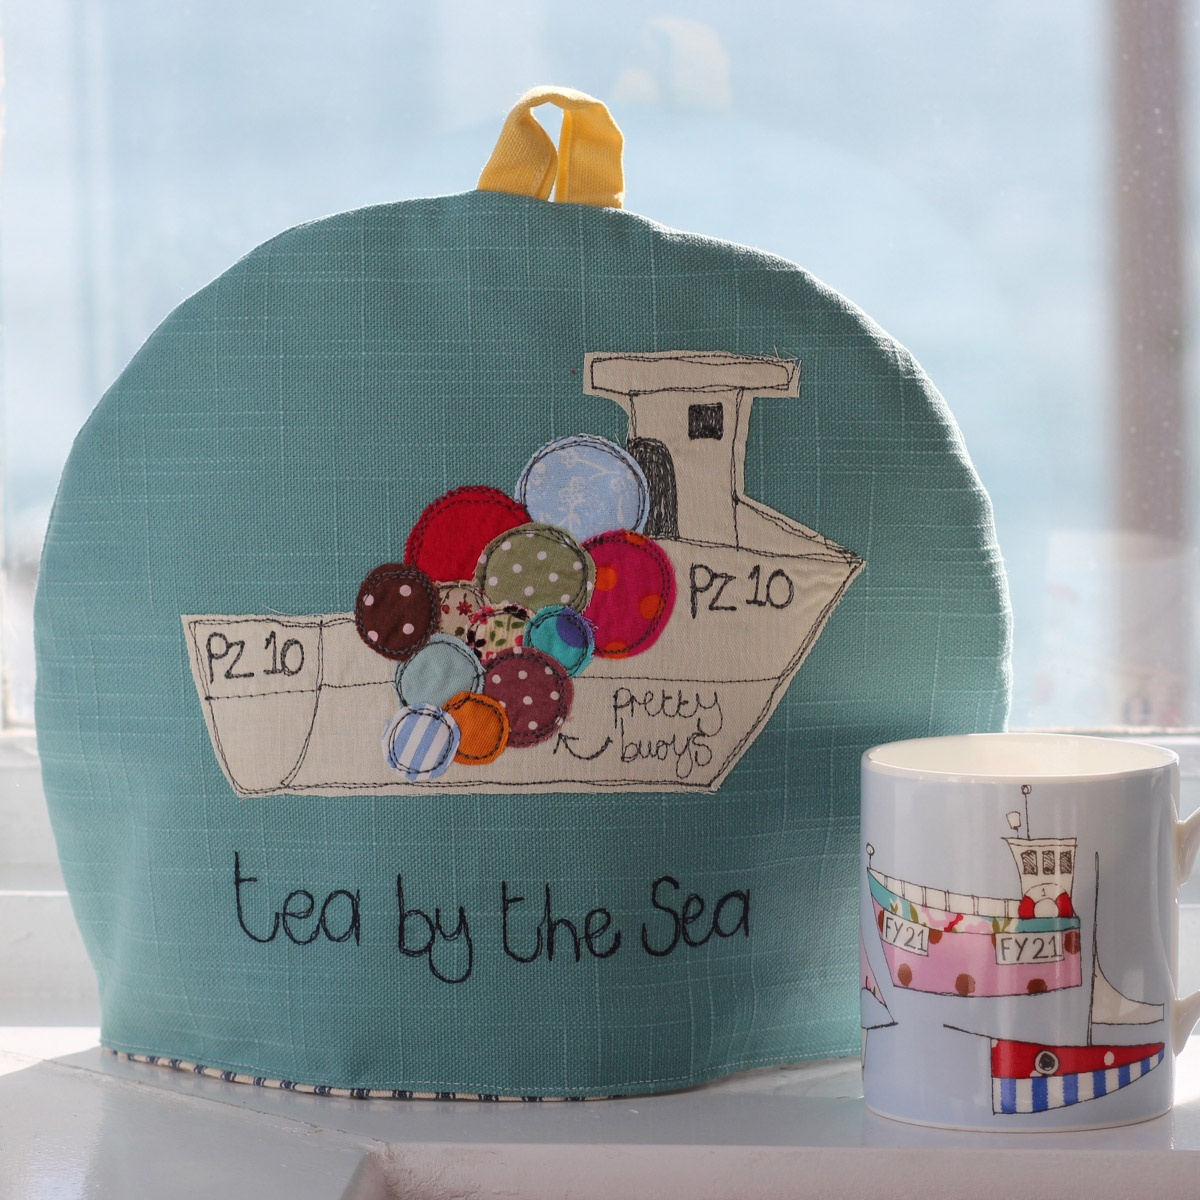 Tea by the Sea tea cosy by Cornish designer maker Poppy Treffry